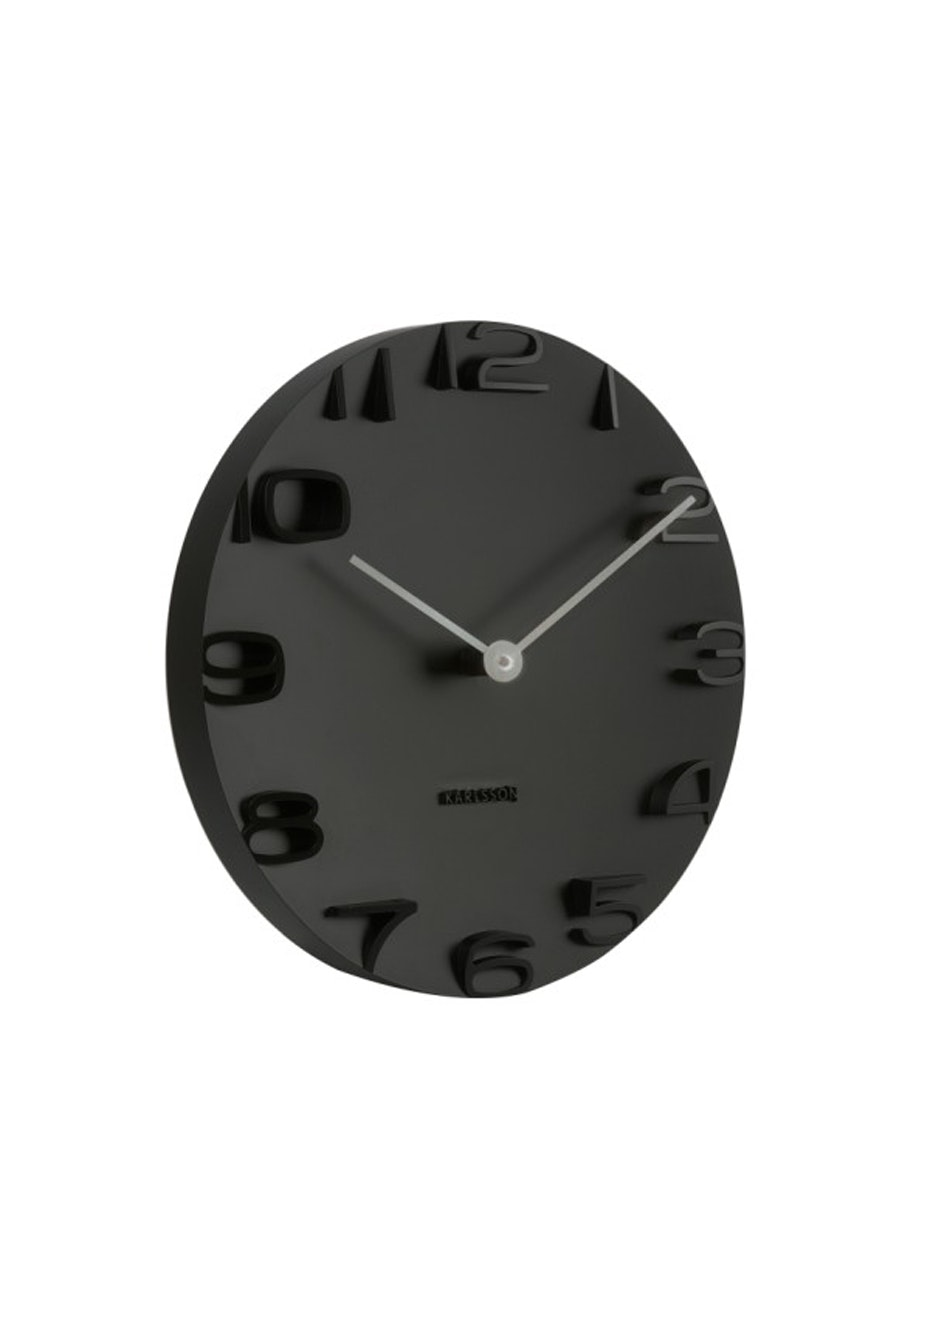 Karlsson - Wall Clock 'On The Edge' - Black